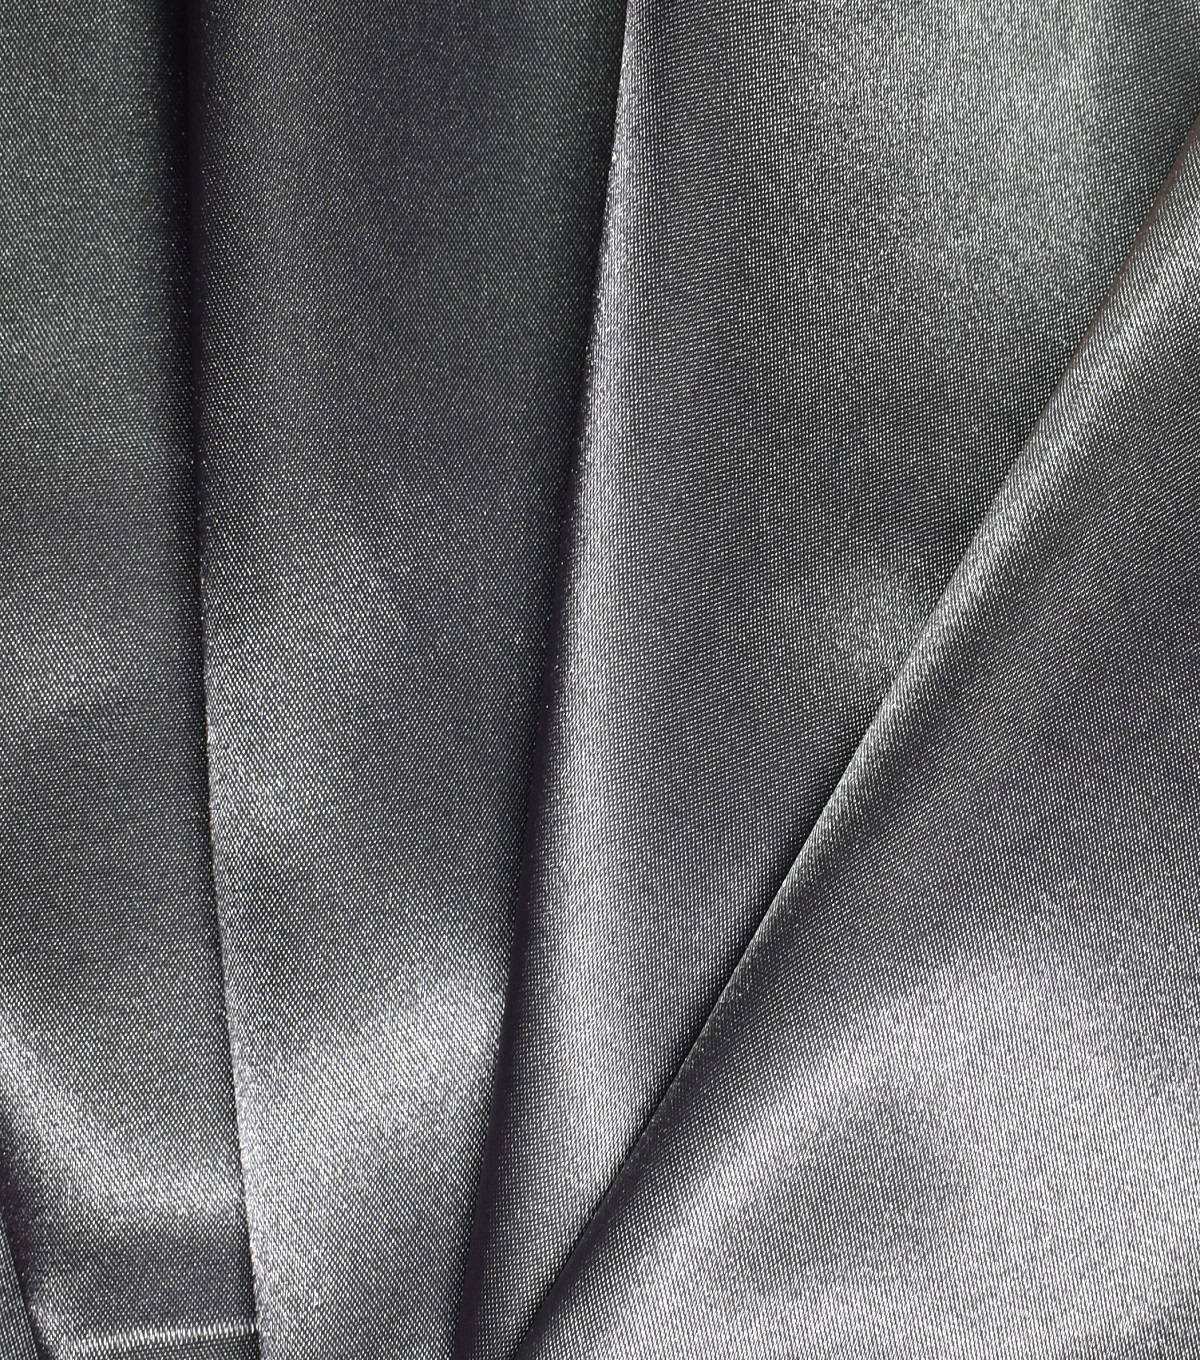 """1 X White//Gold Wet Look Shimmer Satin Fabric Bridal Dance Evening Dress 58"""" Wide"""